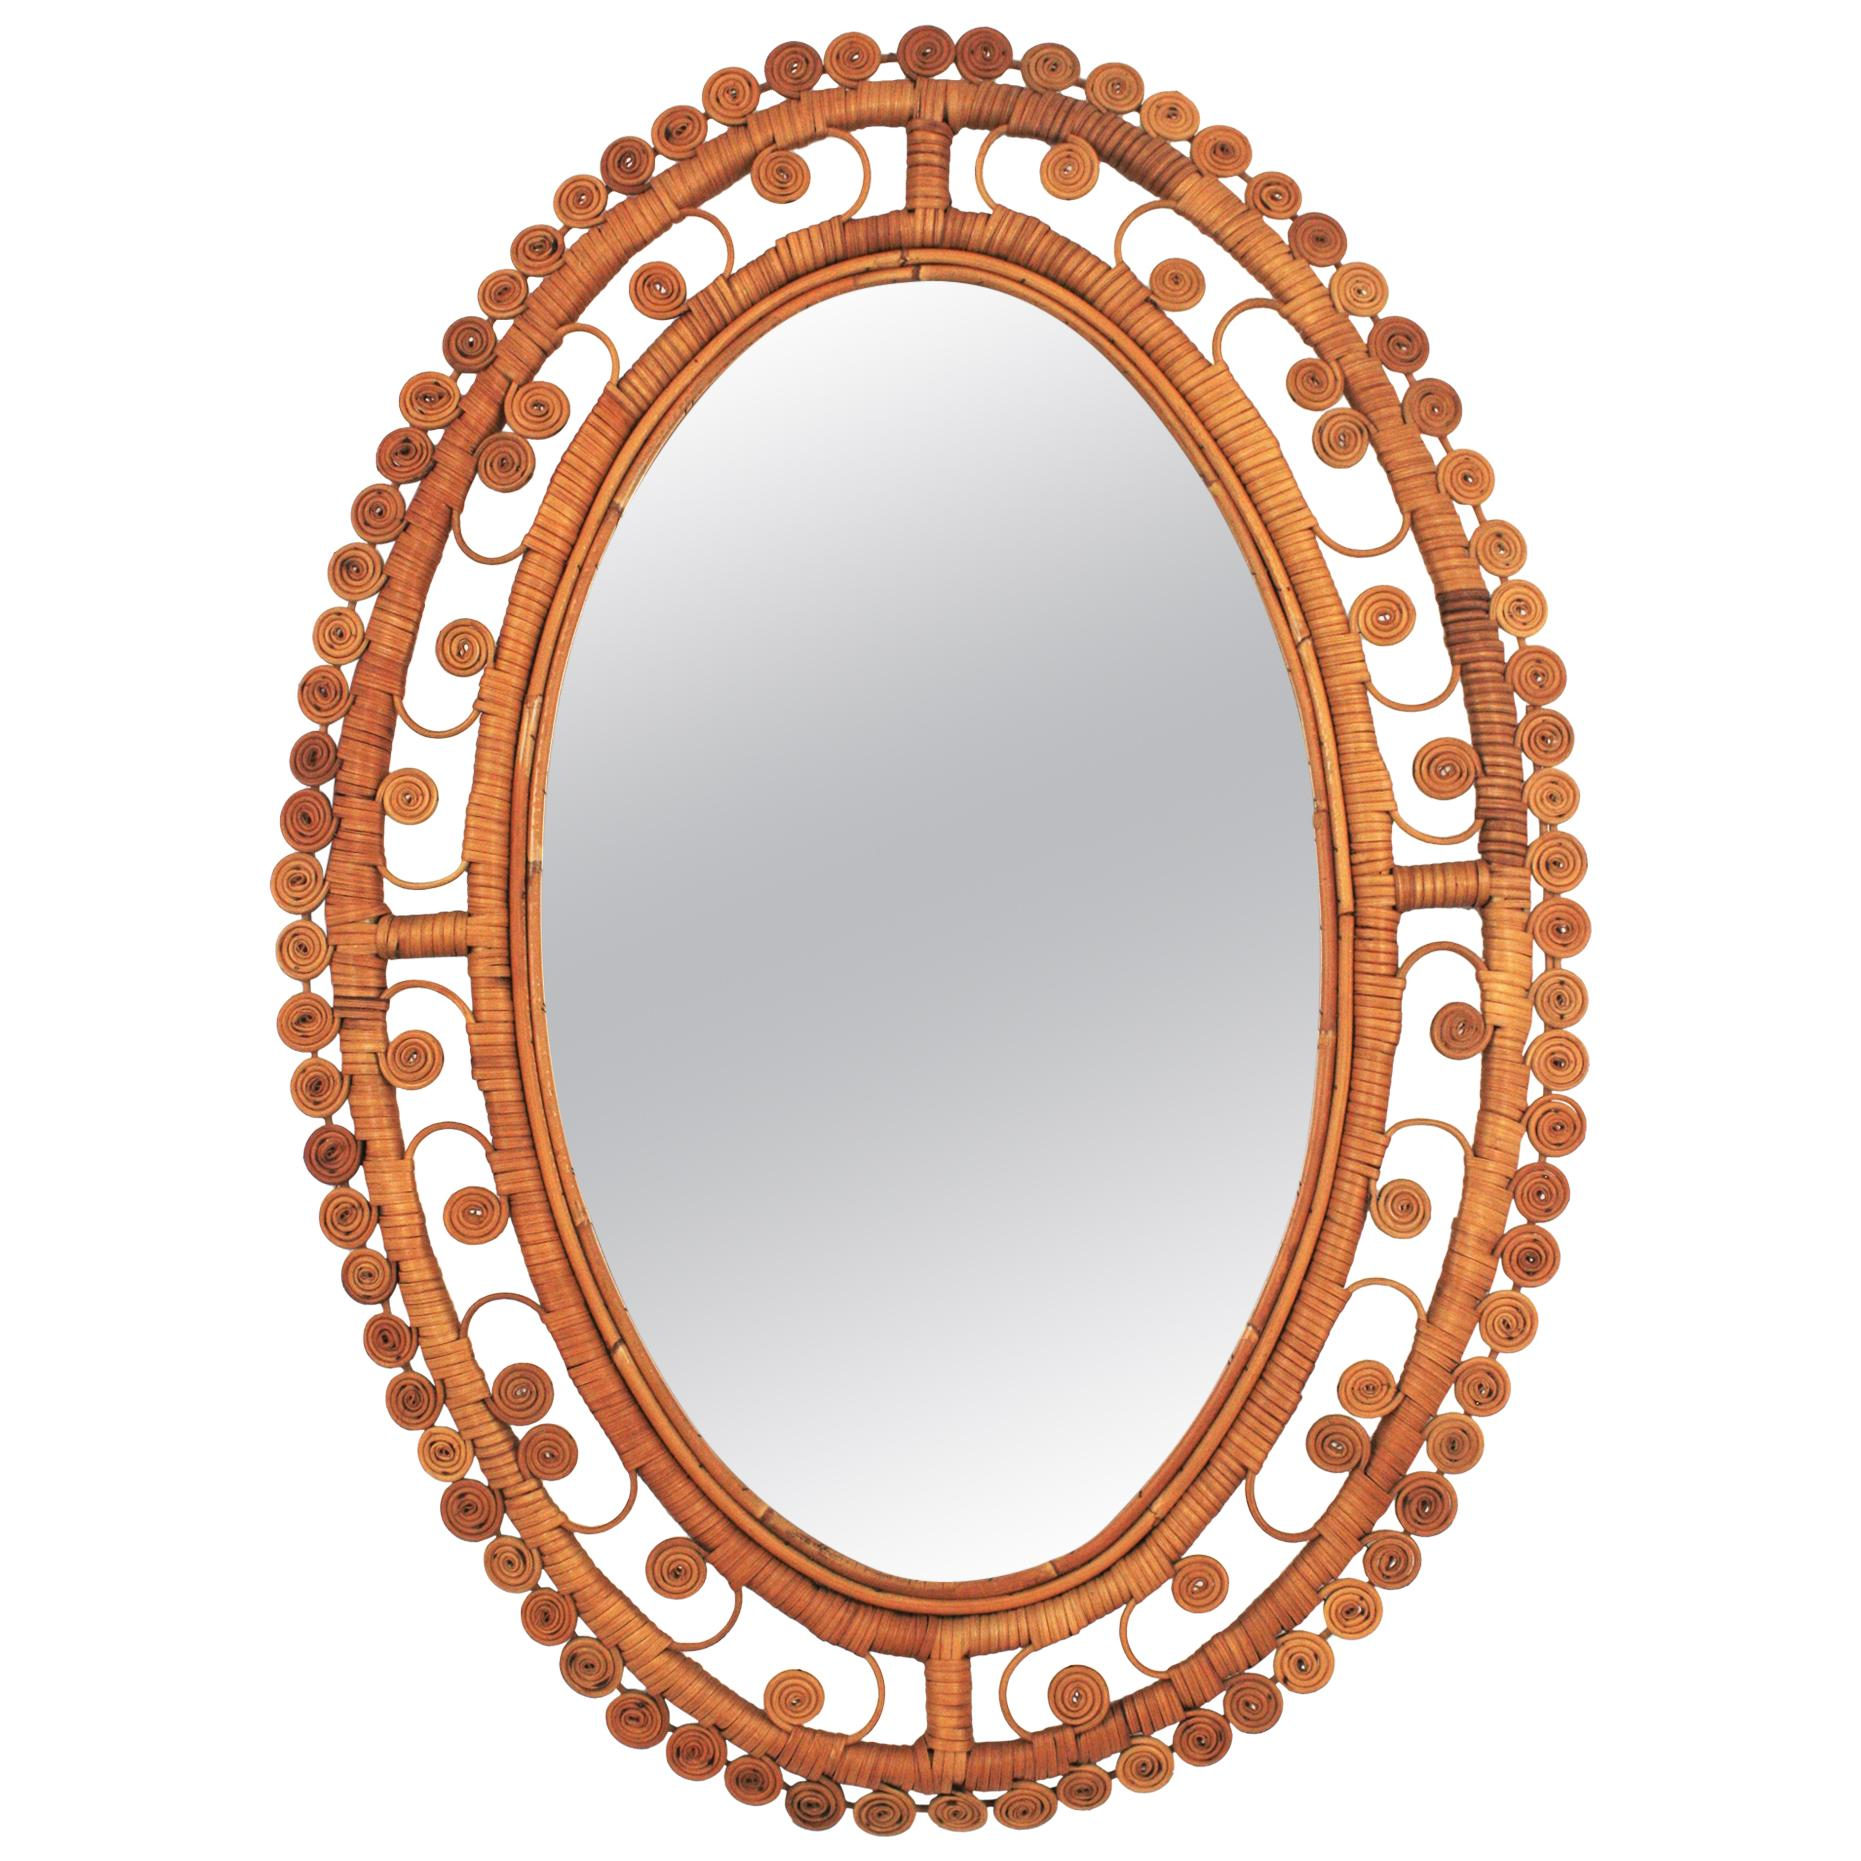 Rattan Large Oval Mirror with Filigree Peacock Frame, Spain, 1960s